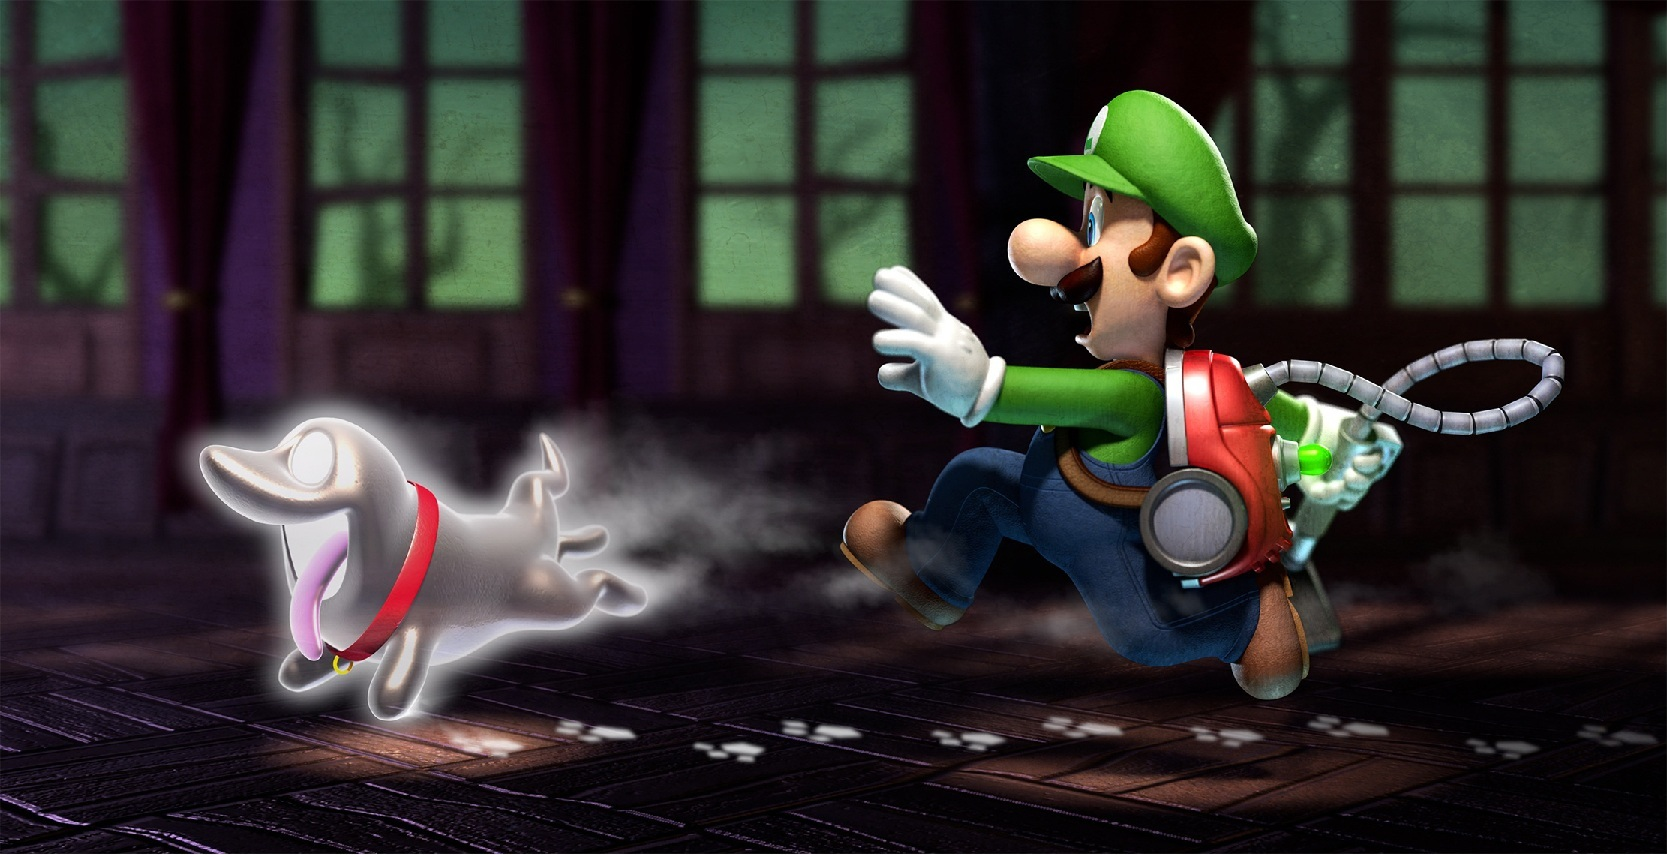 Multiplayer Mode Makes a Ghostly Appearance in Luigi's Mansion: Dark Moon